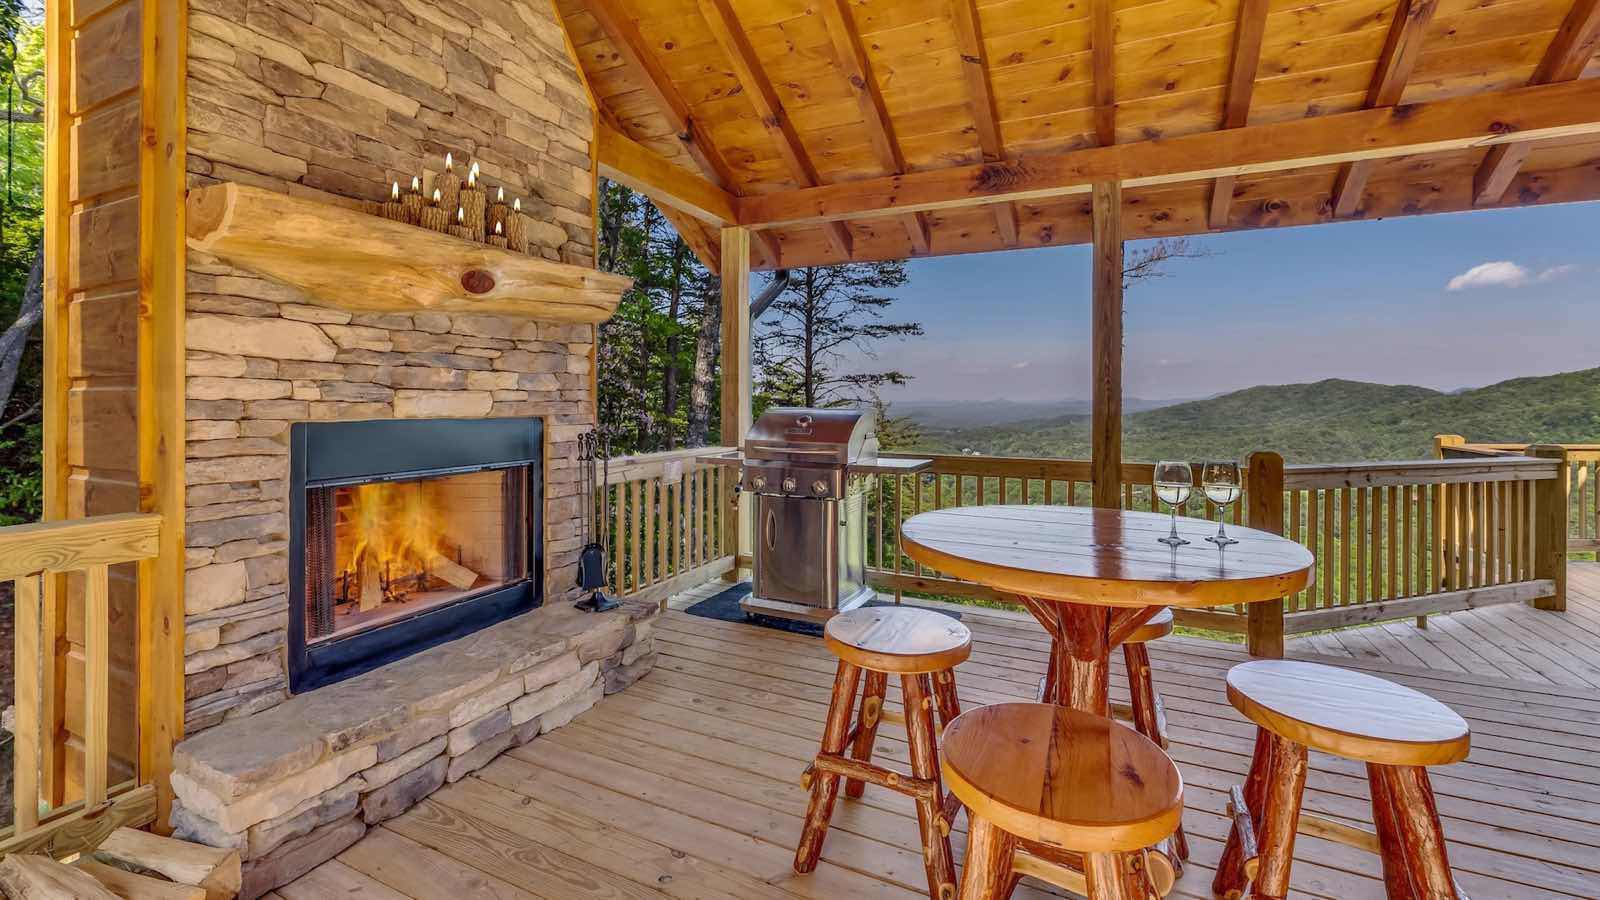 north log cabins spirit sale georgia mountain realty for homes